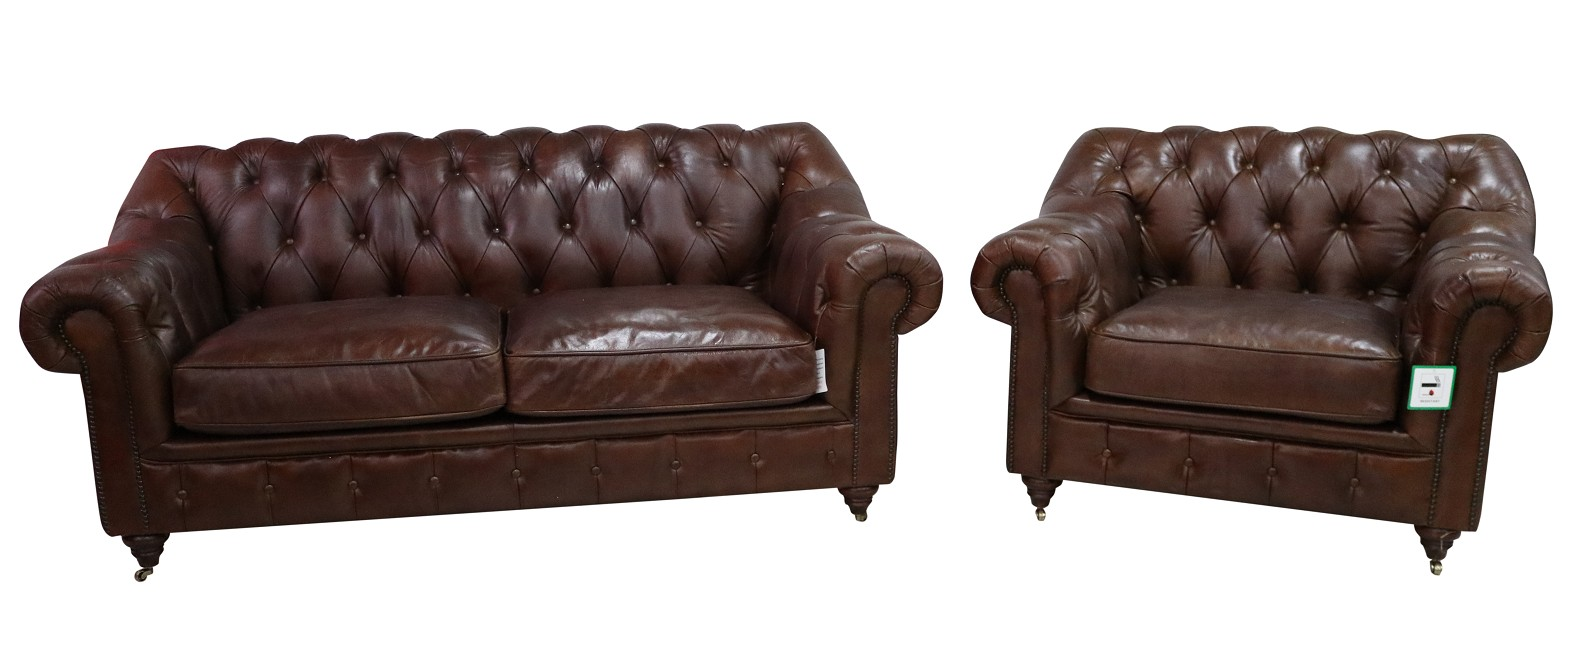 Wellington Chesterfield 2 1 Vintage Brown Distressed Leather Sofa Suite